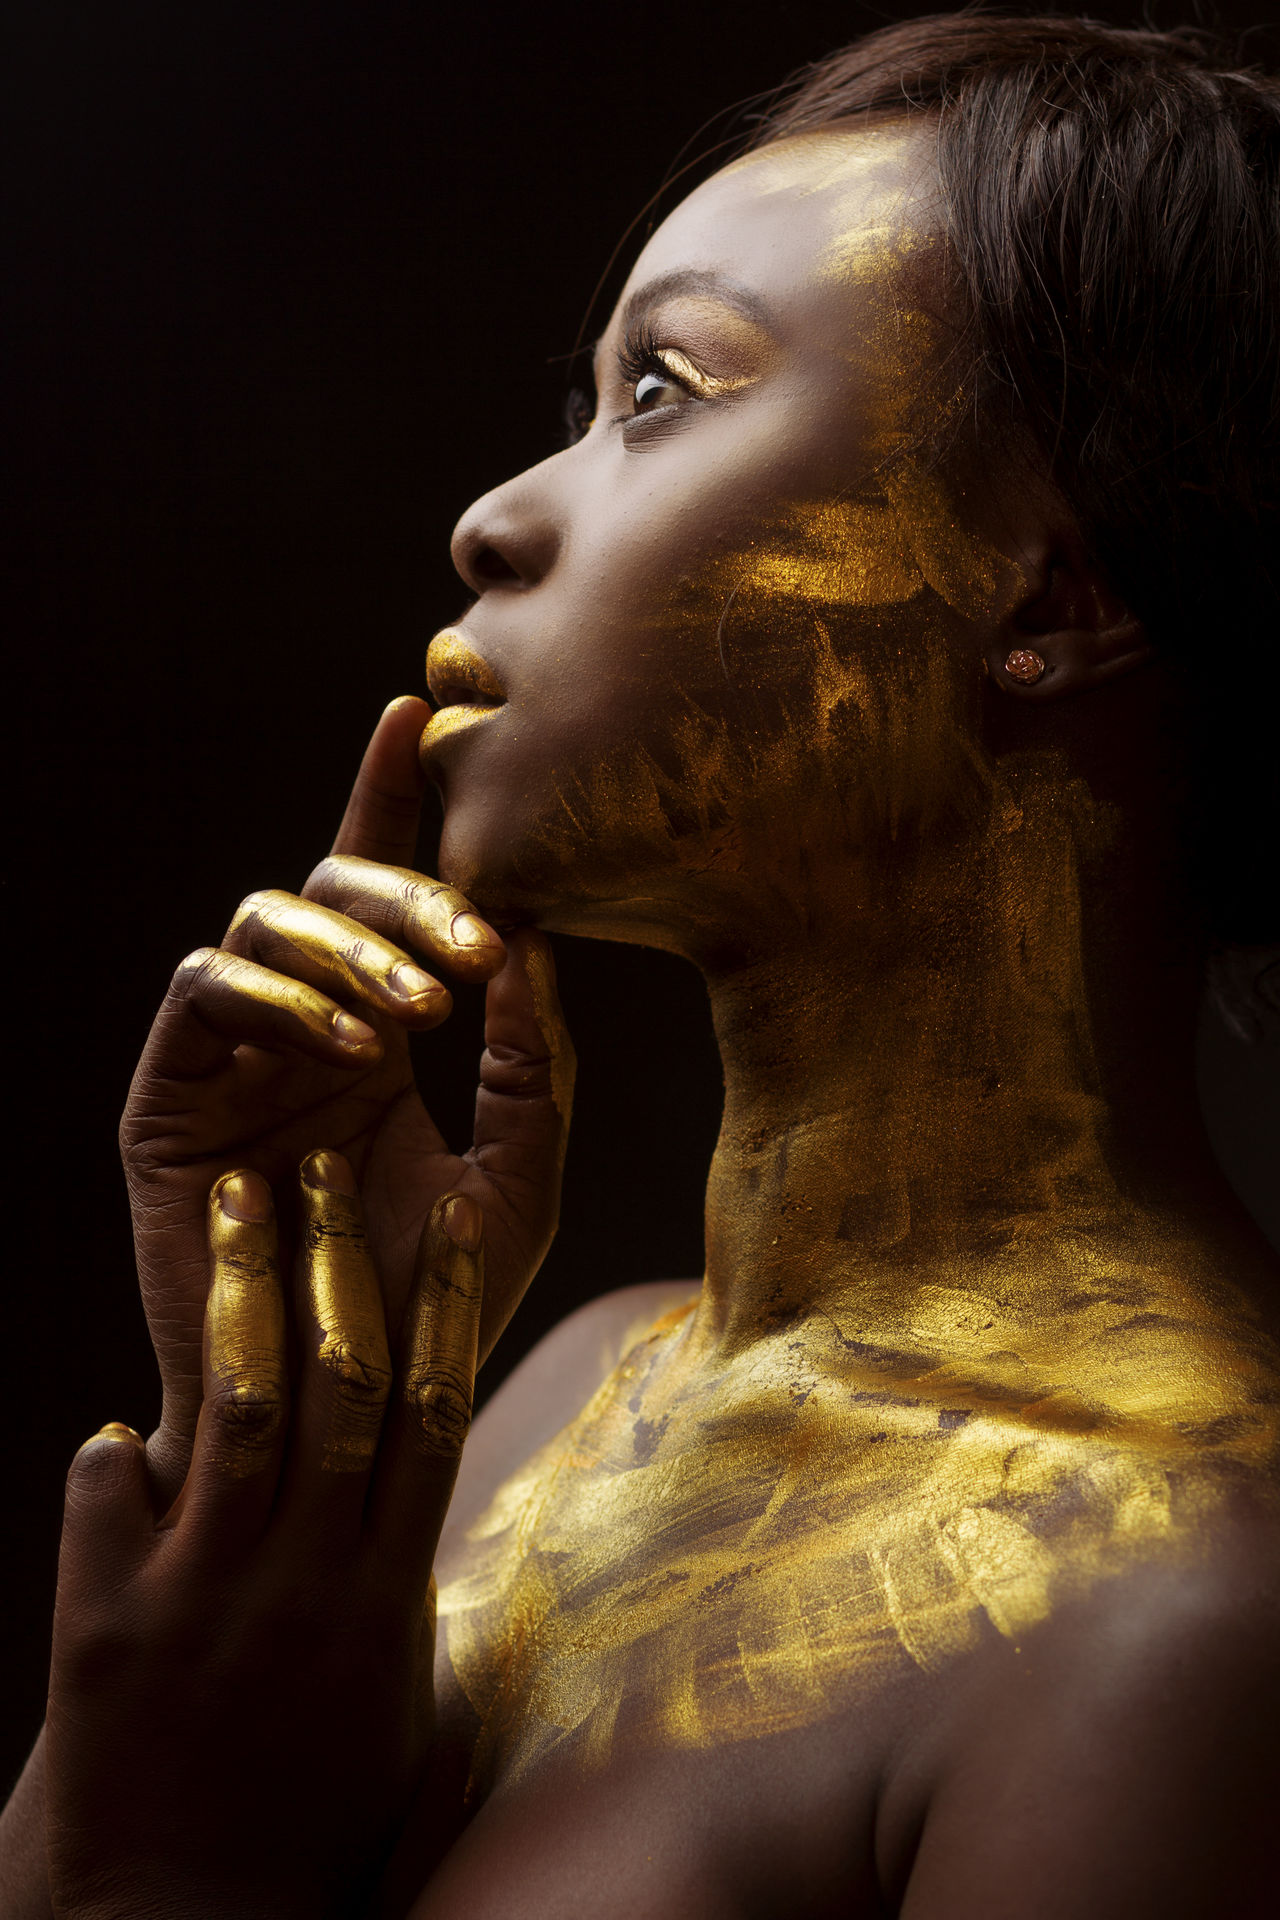 Black Background Close-up Editorial  Editorial Fashion Editorial Photography Formal Portrait Gold Gold Gold Colored Headshot Human Body Part Human Hand Lines Religion Shadow Shadows & Lights Spirituality Studio Photography Studio Shot Touching